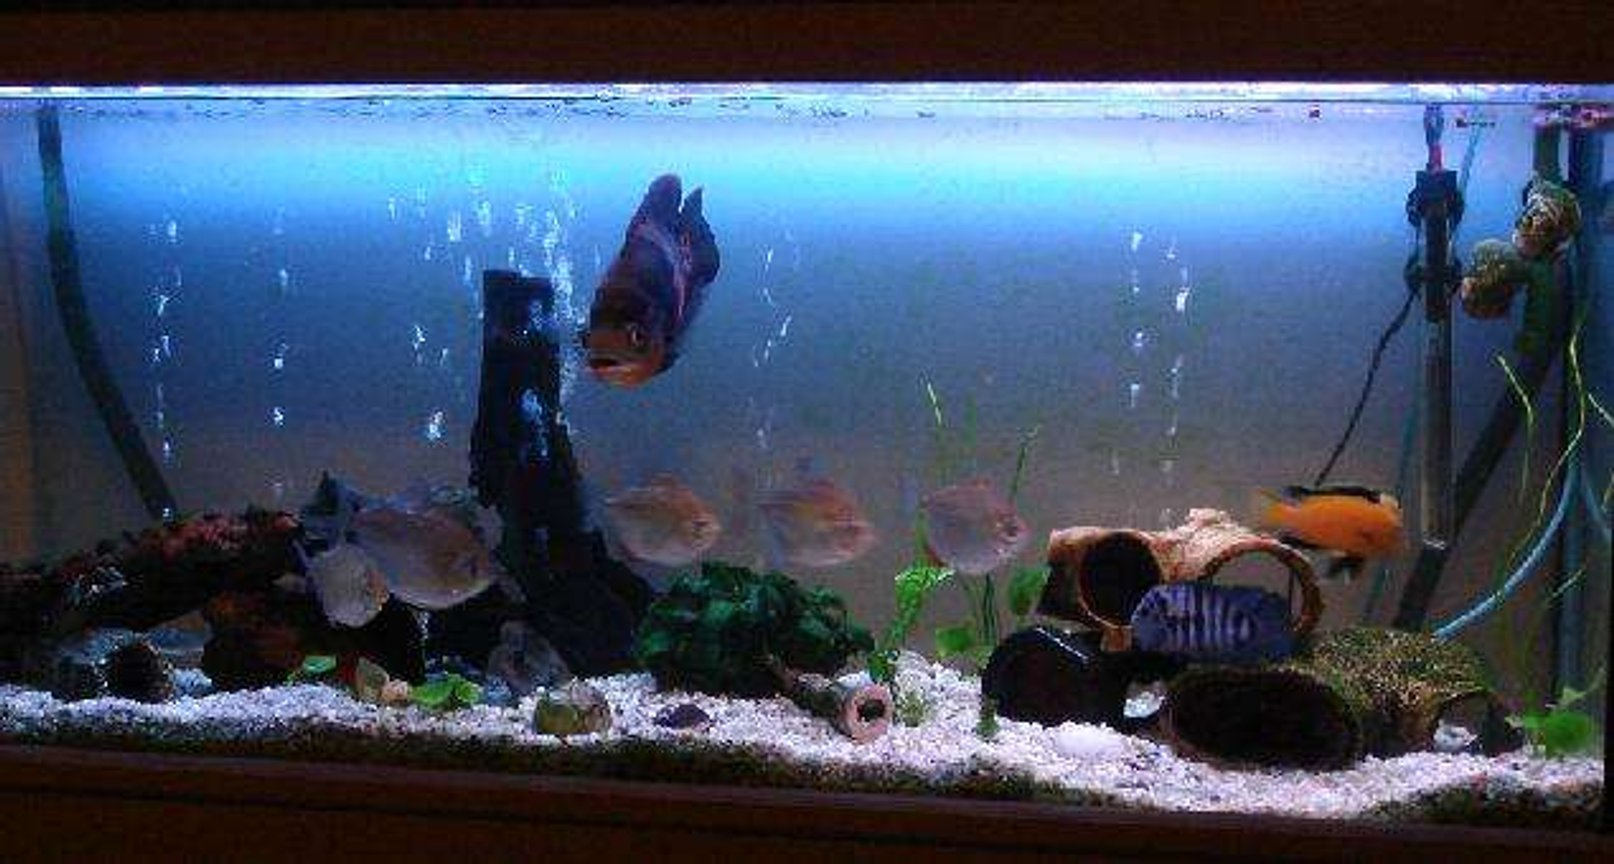 60 gallons freshwater fish tank (mostly fish and non-living decorations) - When the oscar goes I'll give it a facelift...